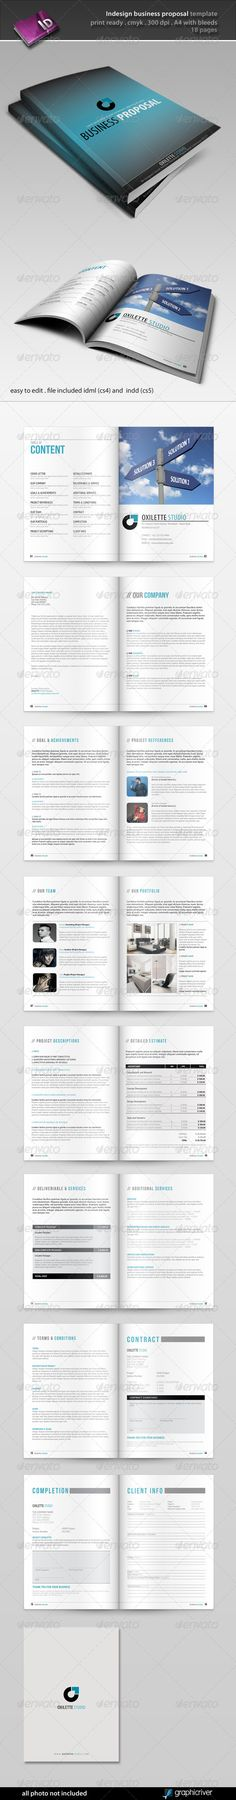 Pin by Karla Morloy on Templates Pinterest Proposals, Proposal - project proposal word template